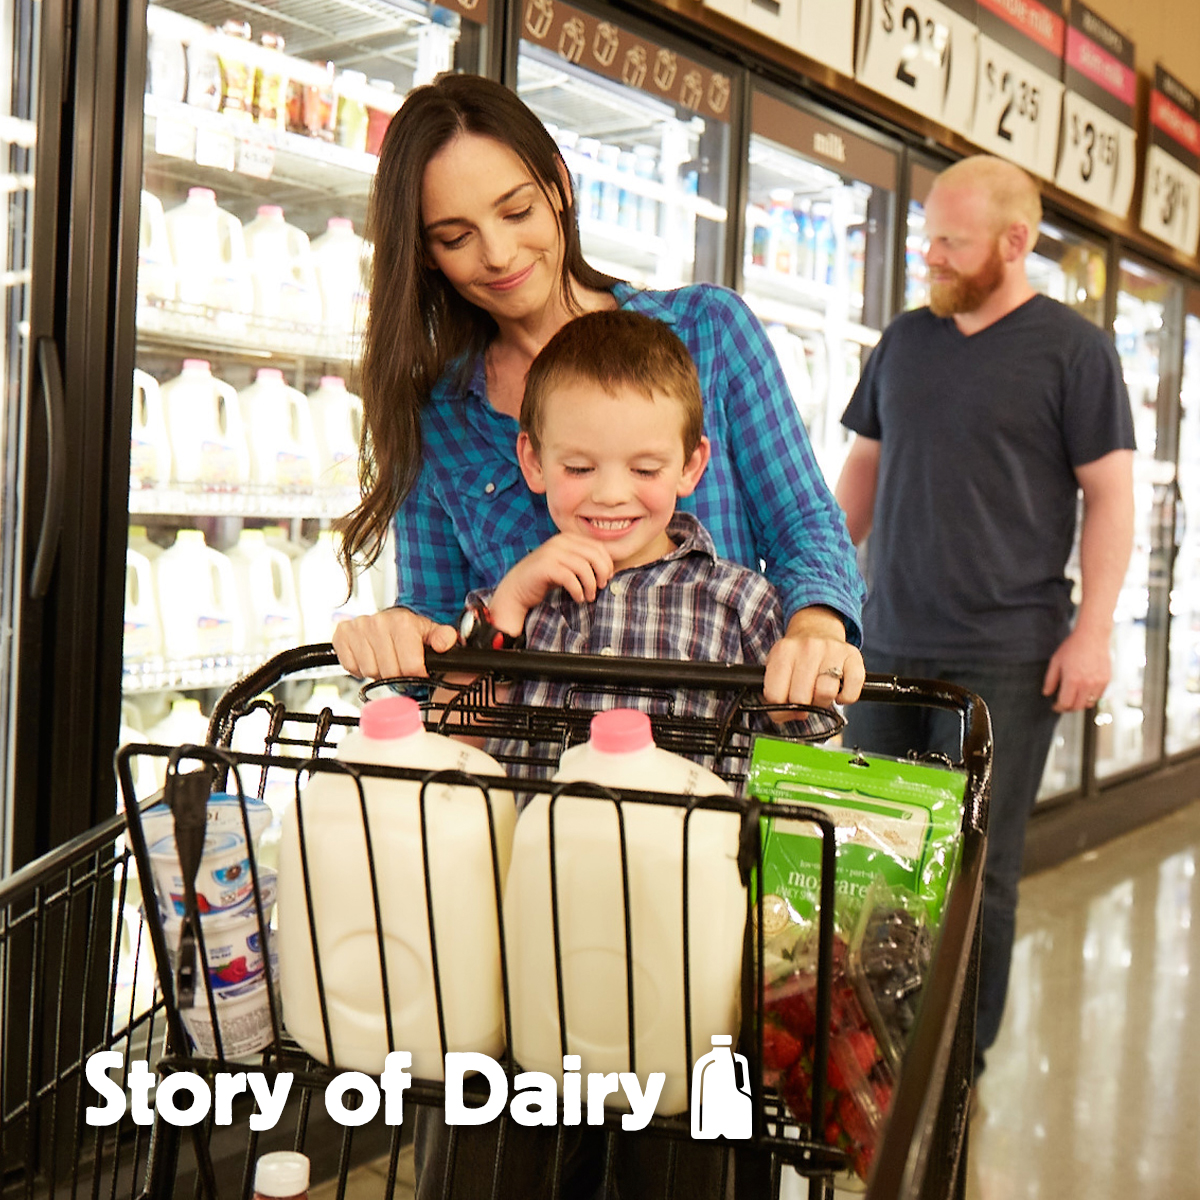 The Story of Dairy: Where You Purchase Your Milk